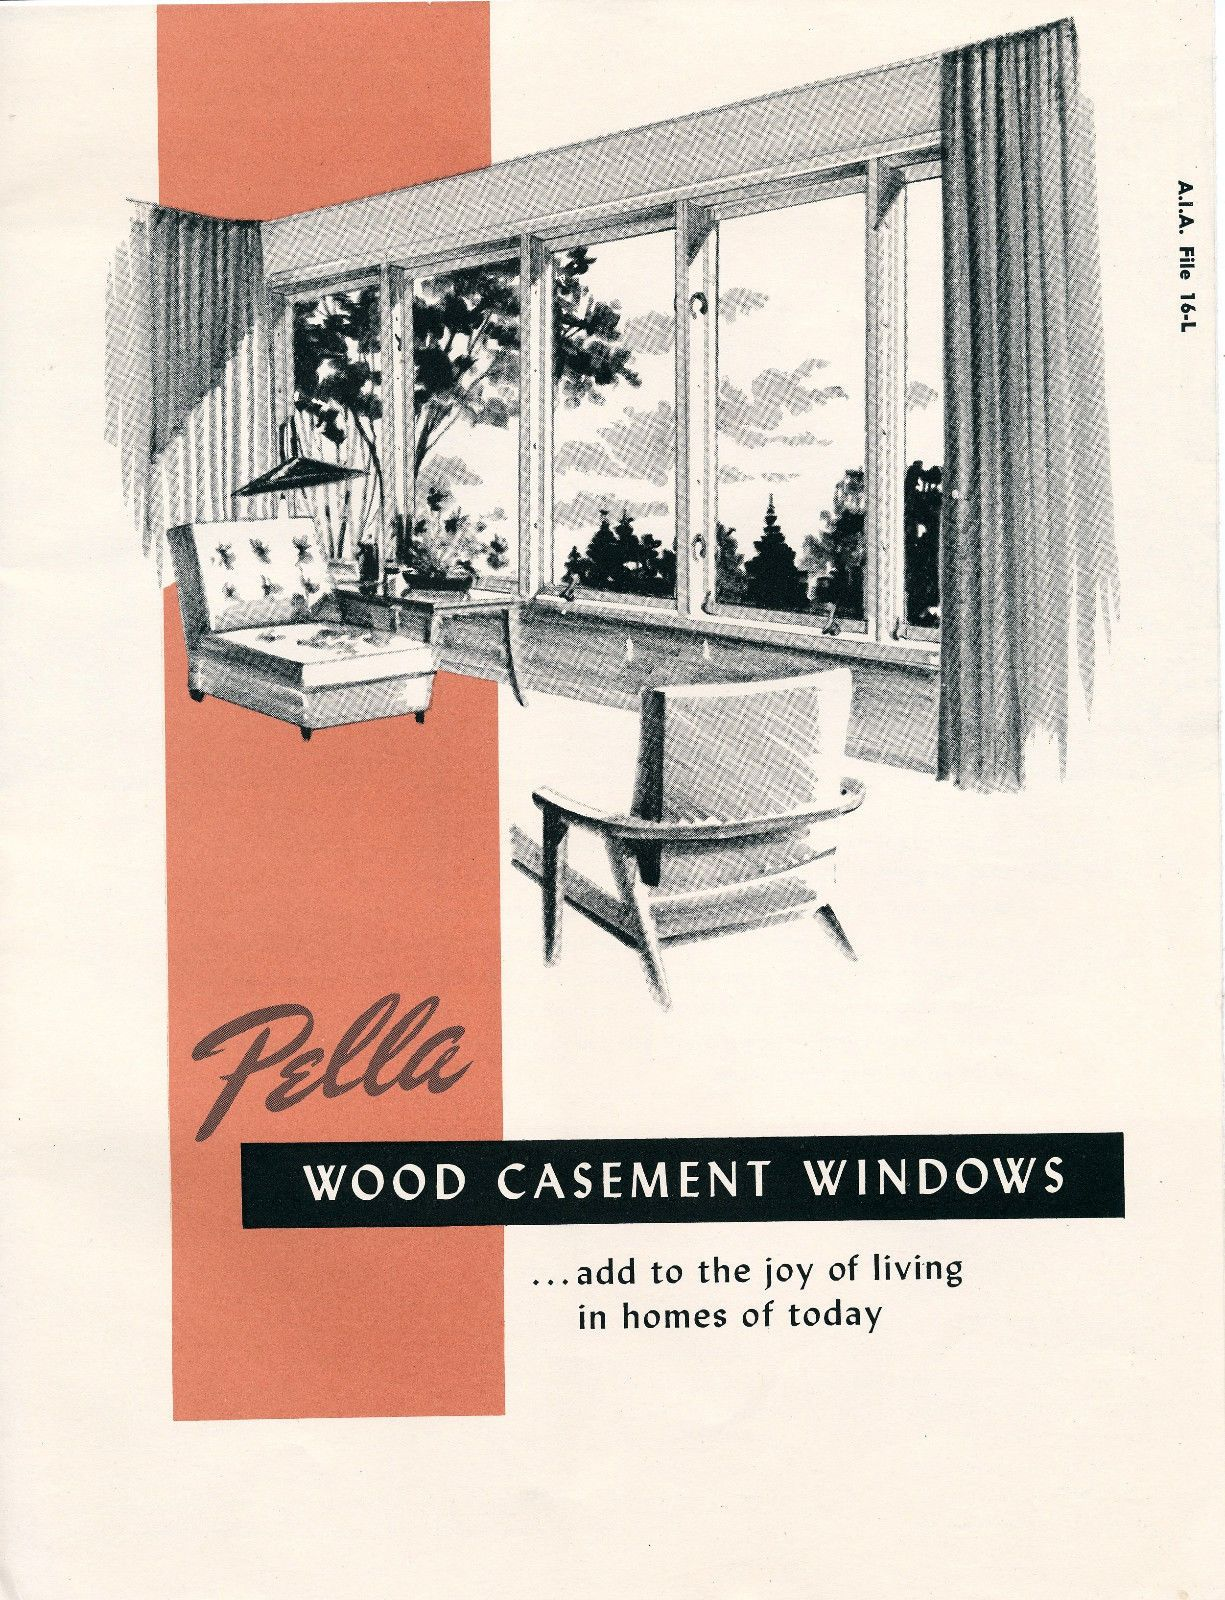 Vintage pella wood casement windows brochure circa 1950 1952 mid vintage pella wood casement windows brochure circa 1950 1952 mid century ebay geenschuldenfo Gallery